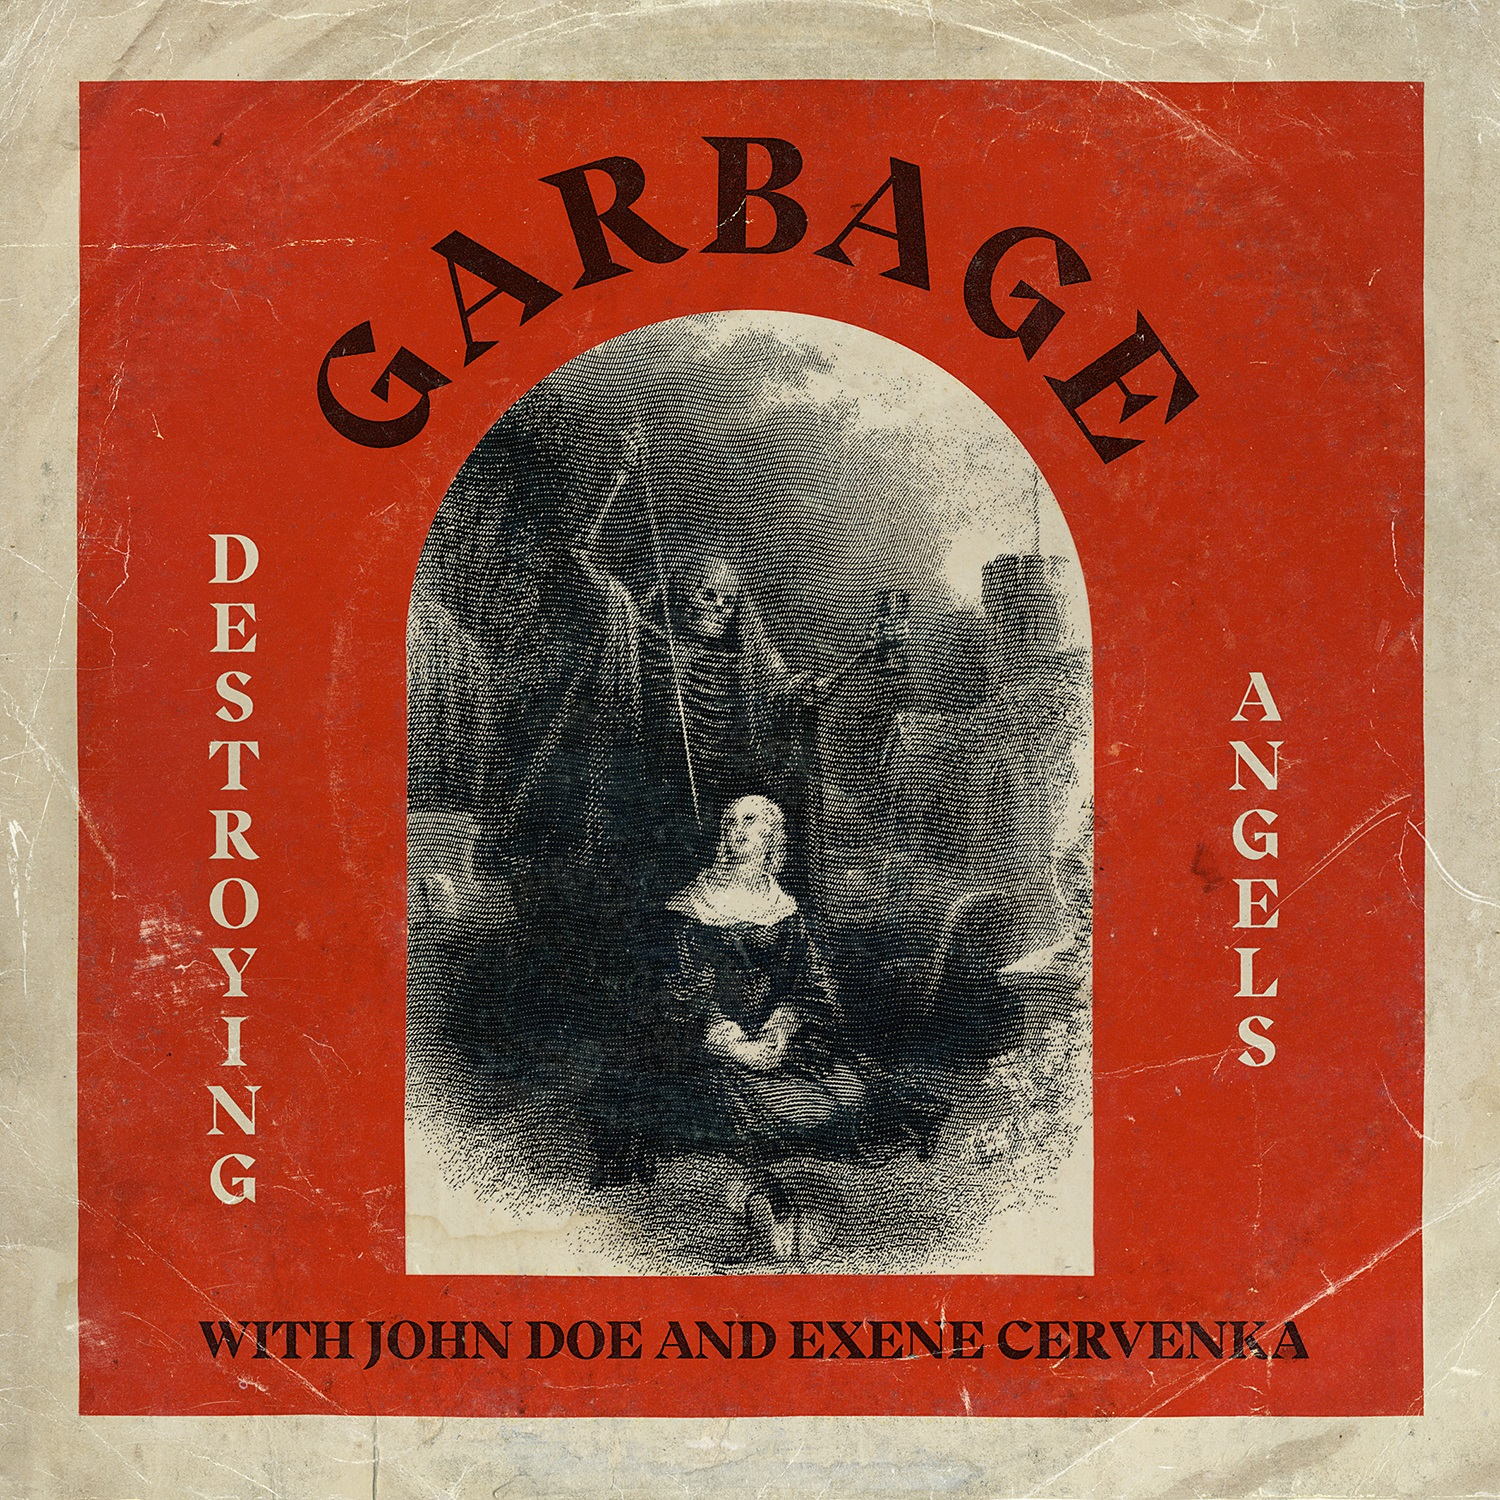 Garbage with John Doe and Exene Cervenka - Destroying Angels